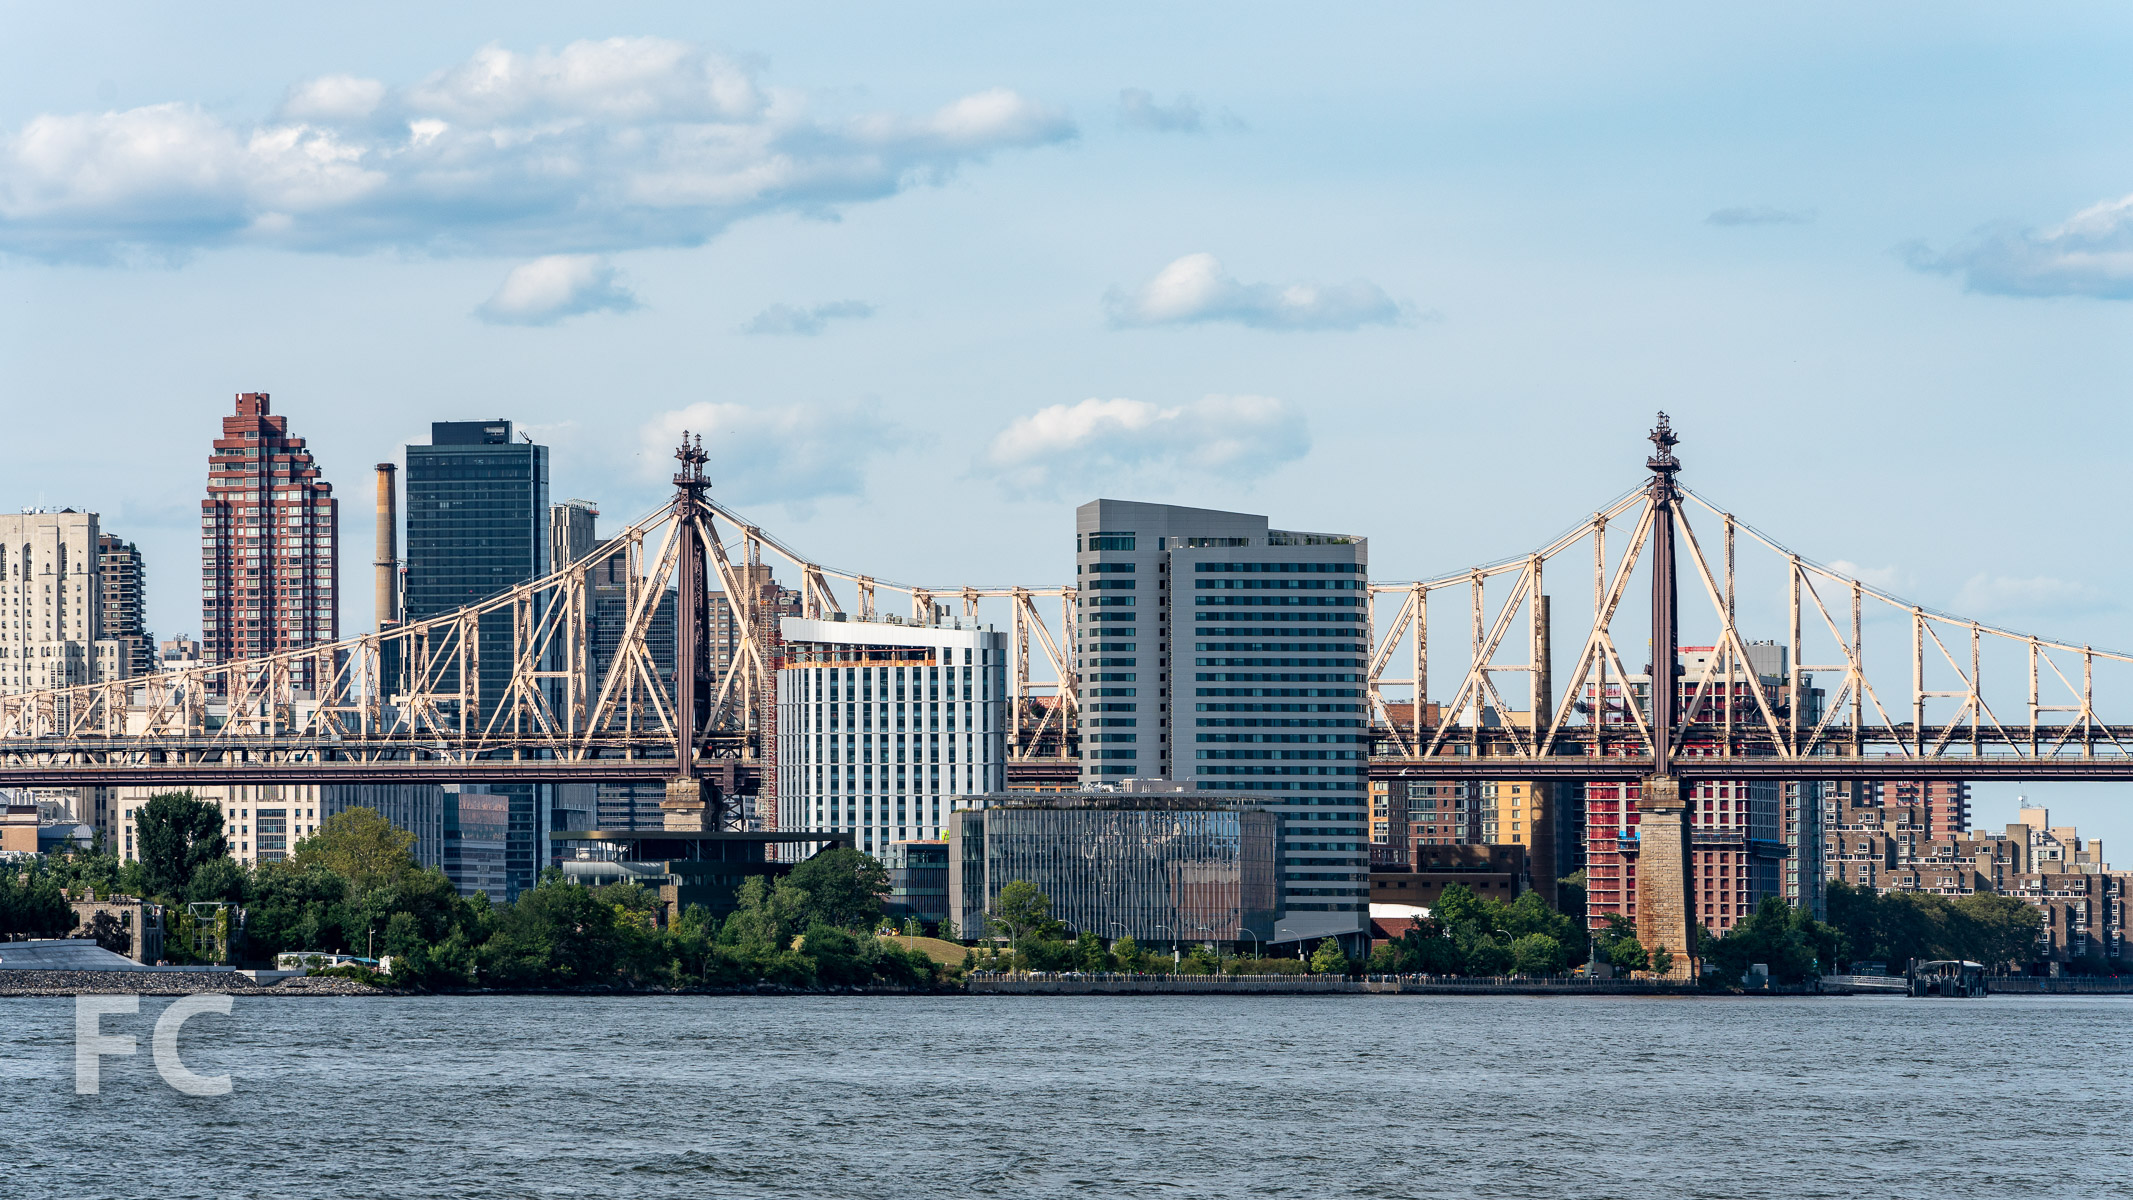 Cornell Tech campus from the East River.